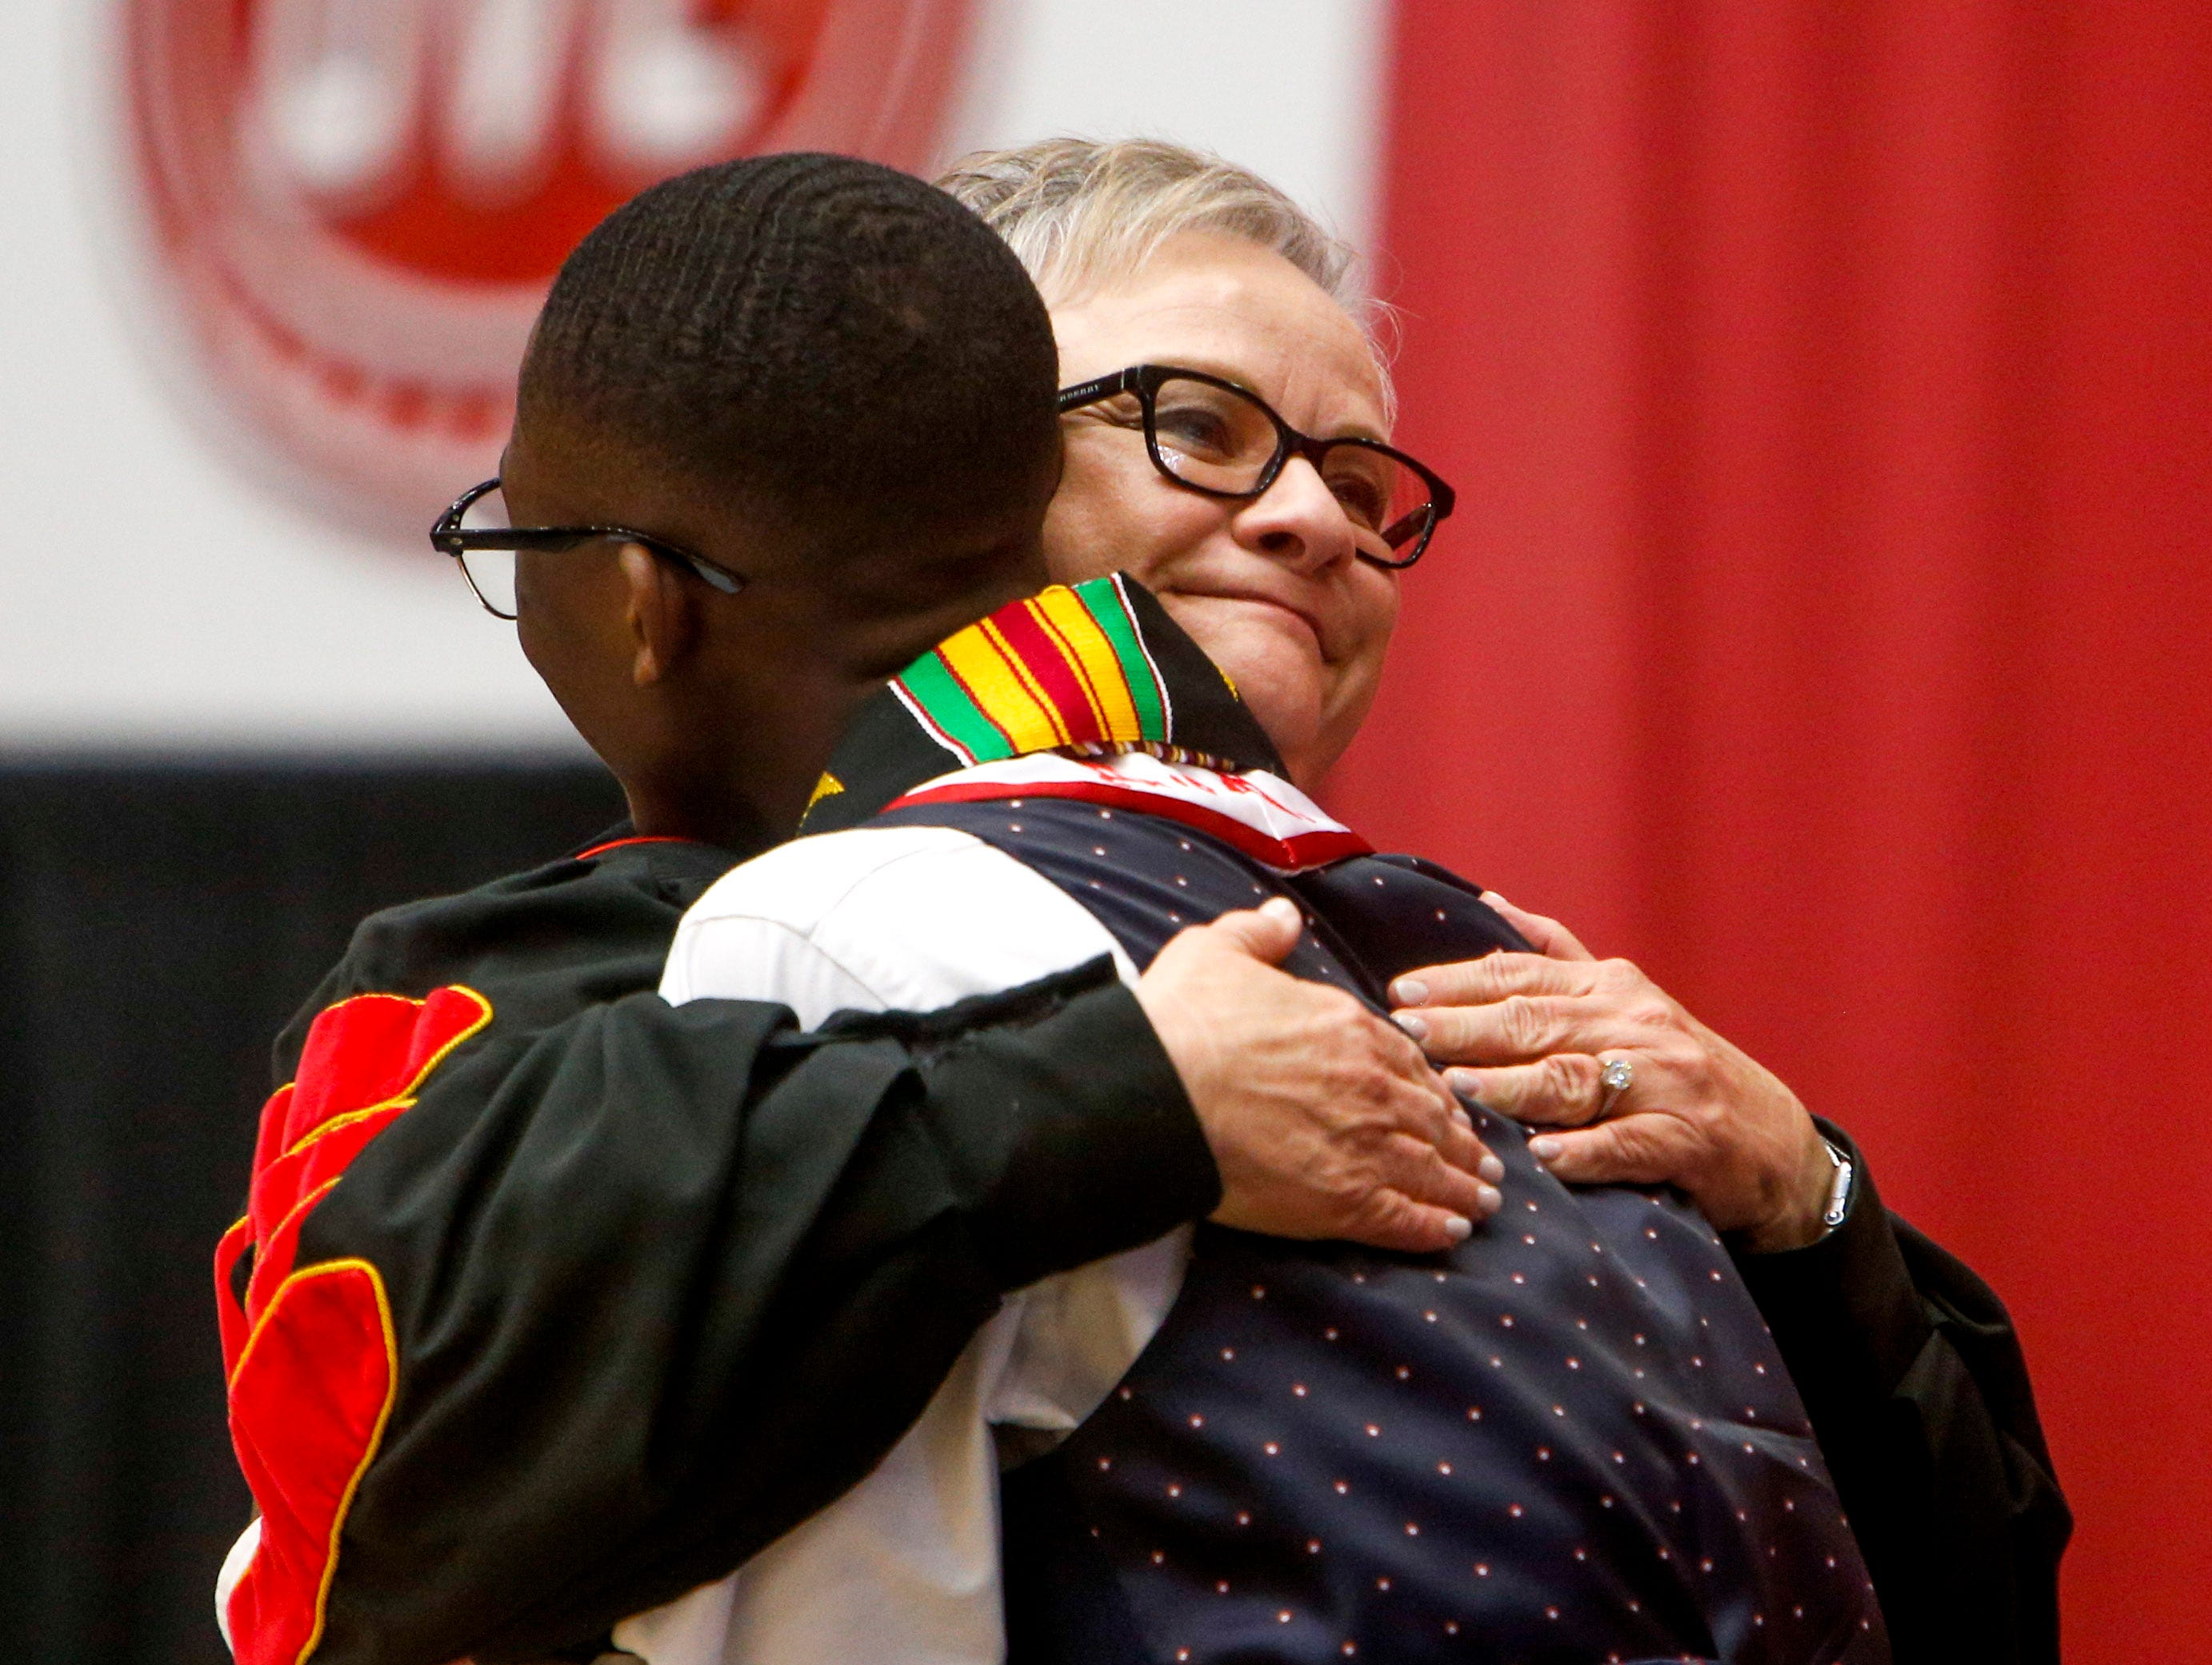 A speaker welcomes and embraces a member of student government at the Austin Peay spring commencement ceremony 2019 for College of Business and College of STEM at Winfield Dunn Center in Clarksville, Tenn., on Friday, May 3, 2019.